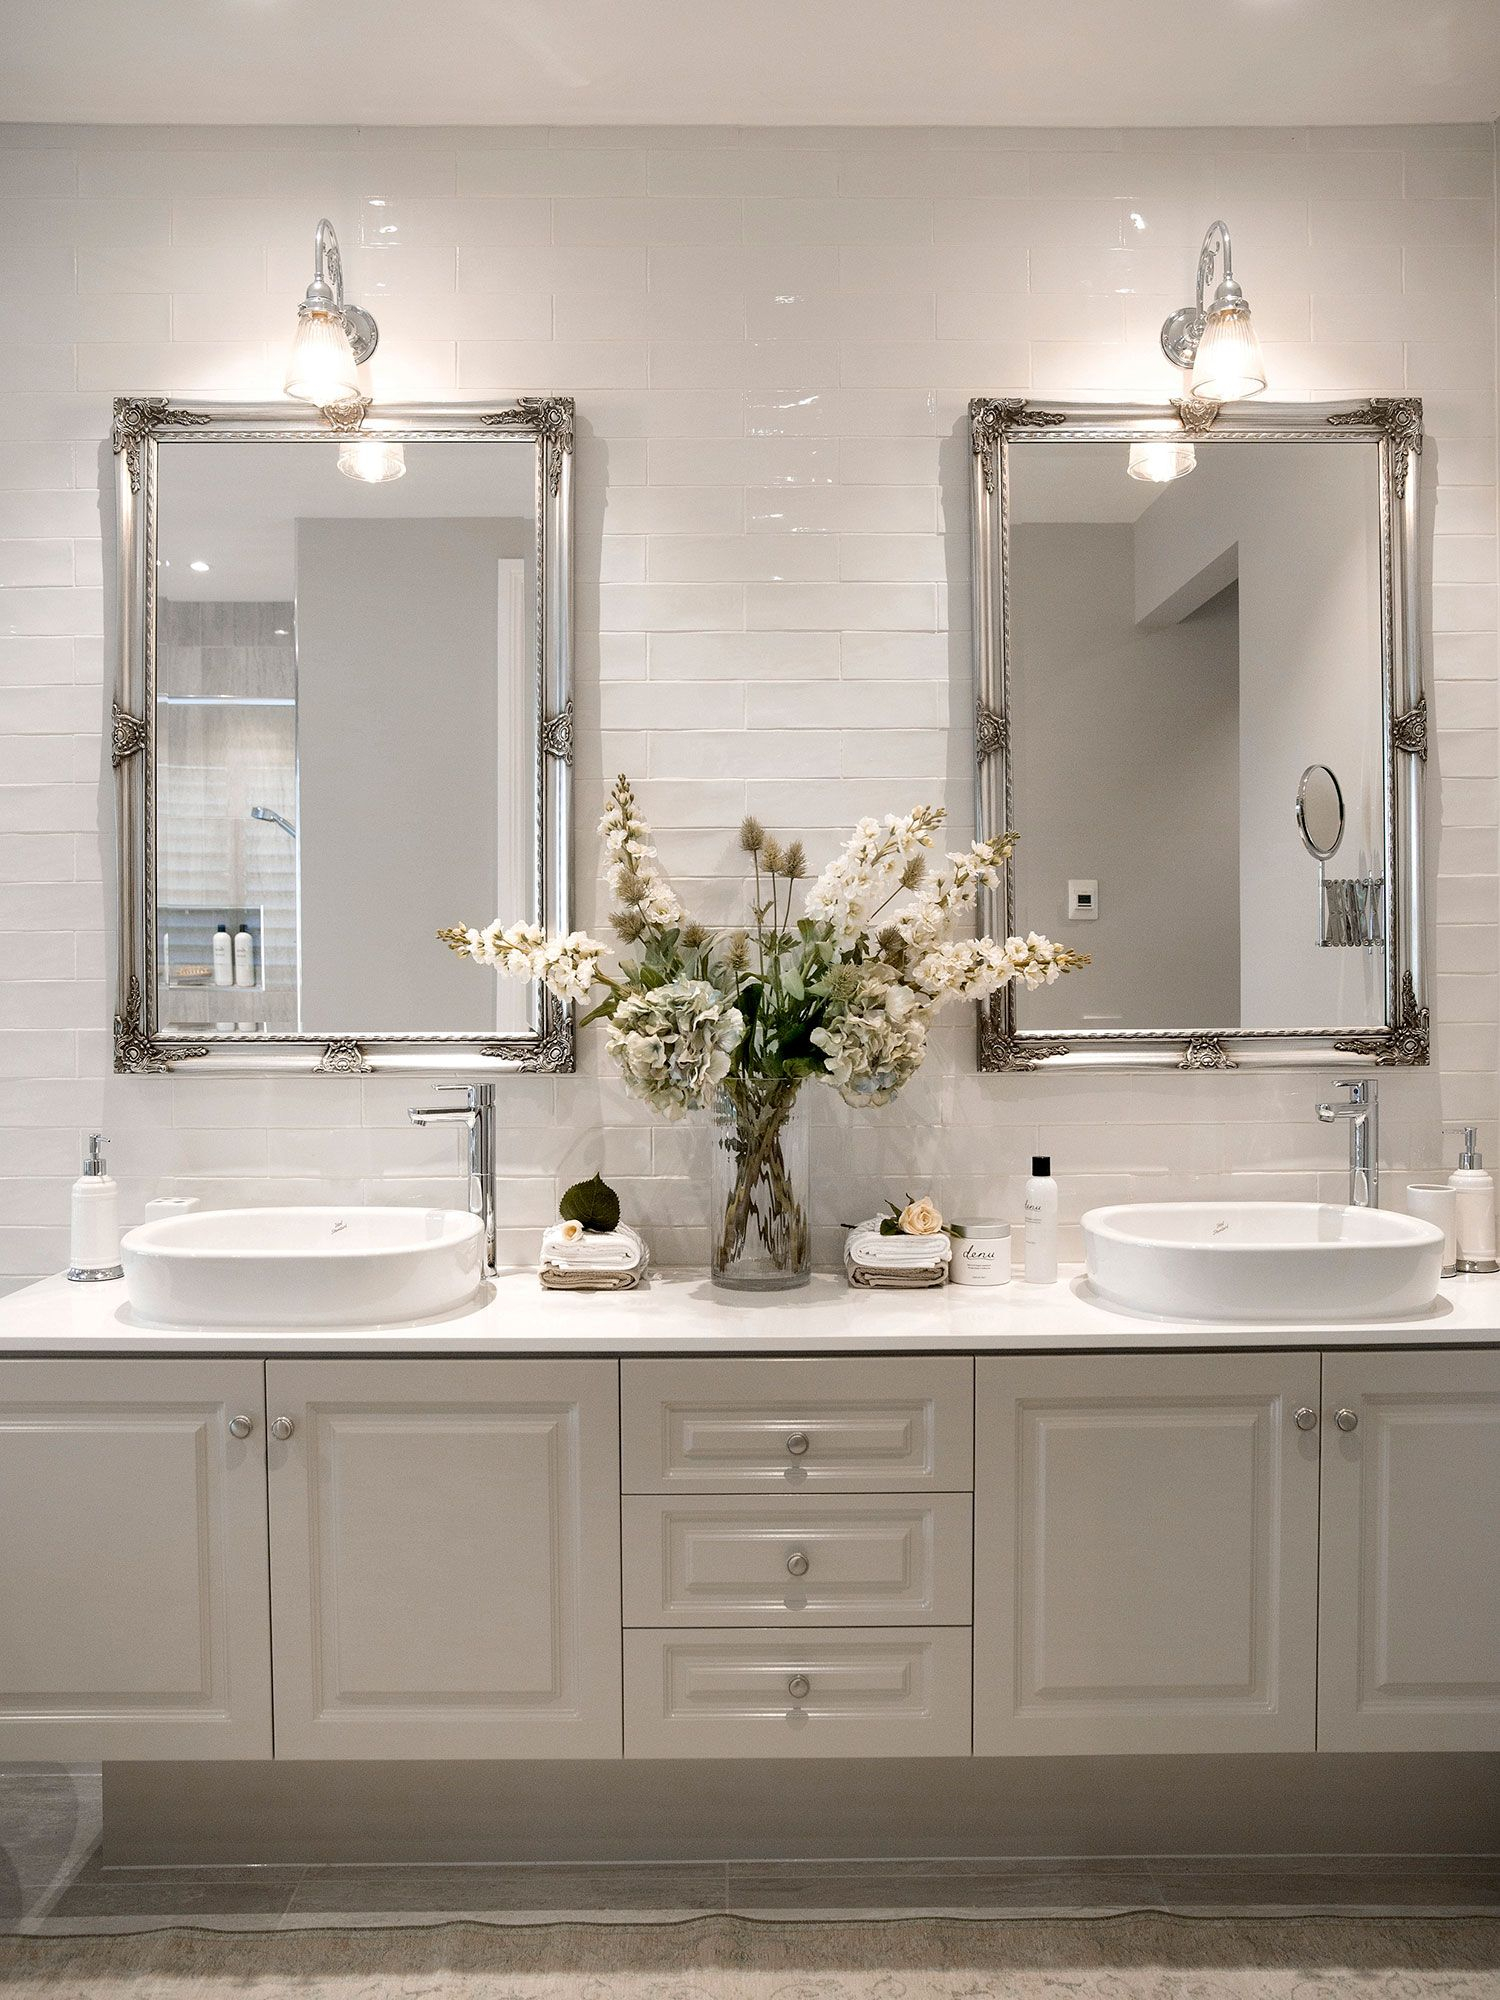 Traditional Bathroom Ideas - realestate.com.au  Traditional